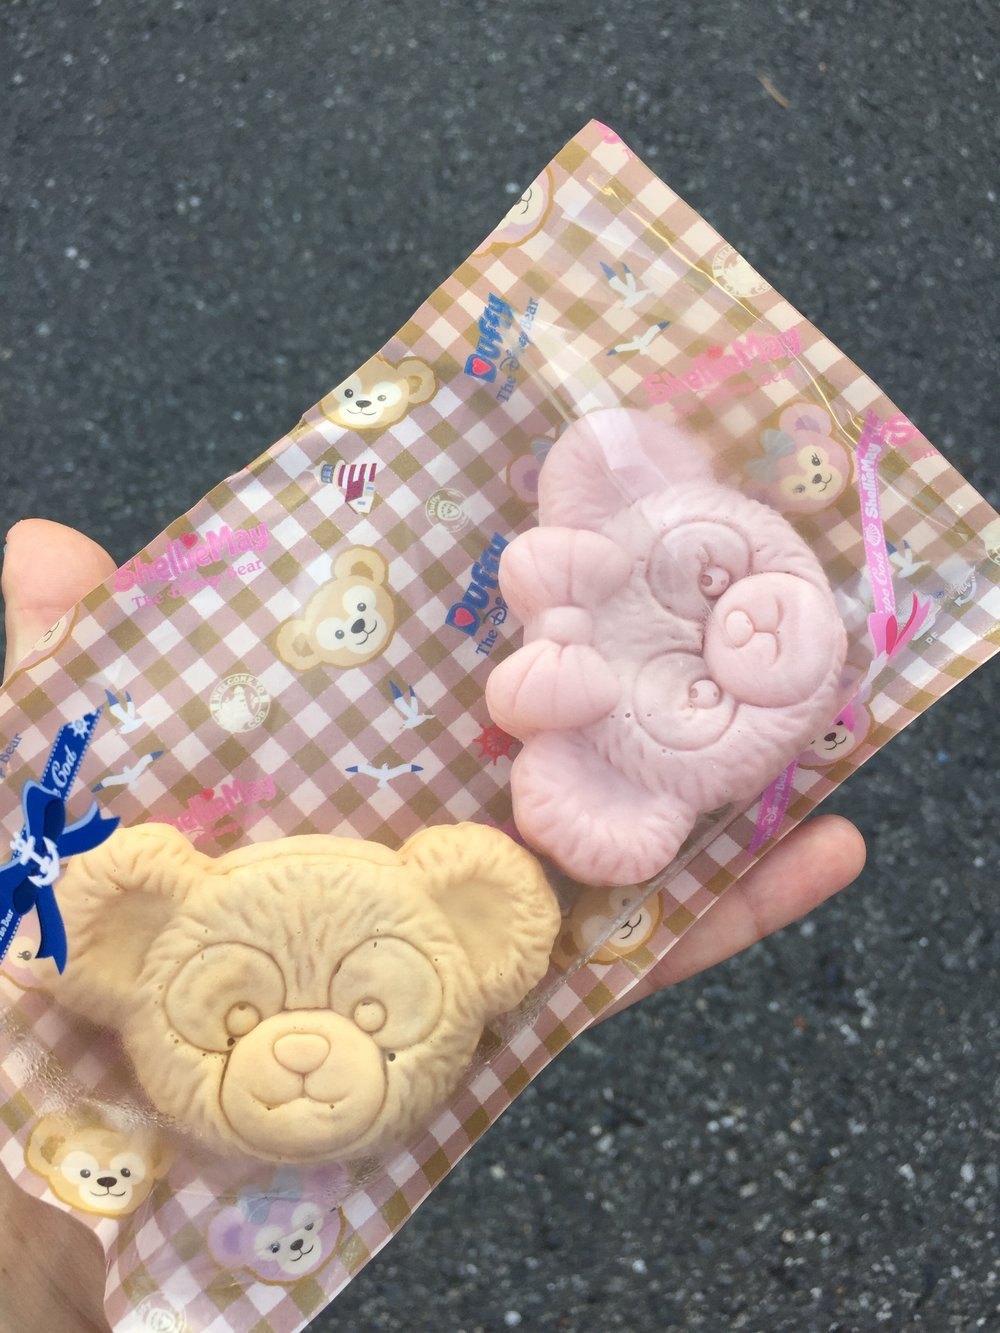 Small cakes in the shape of teddy bears.